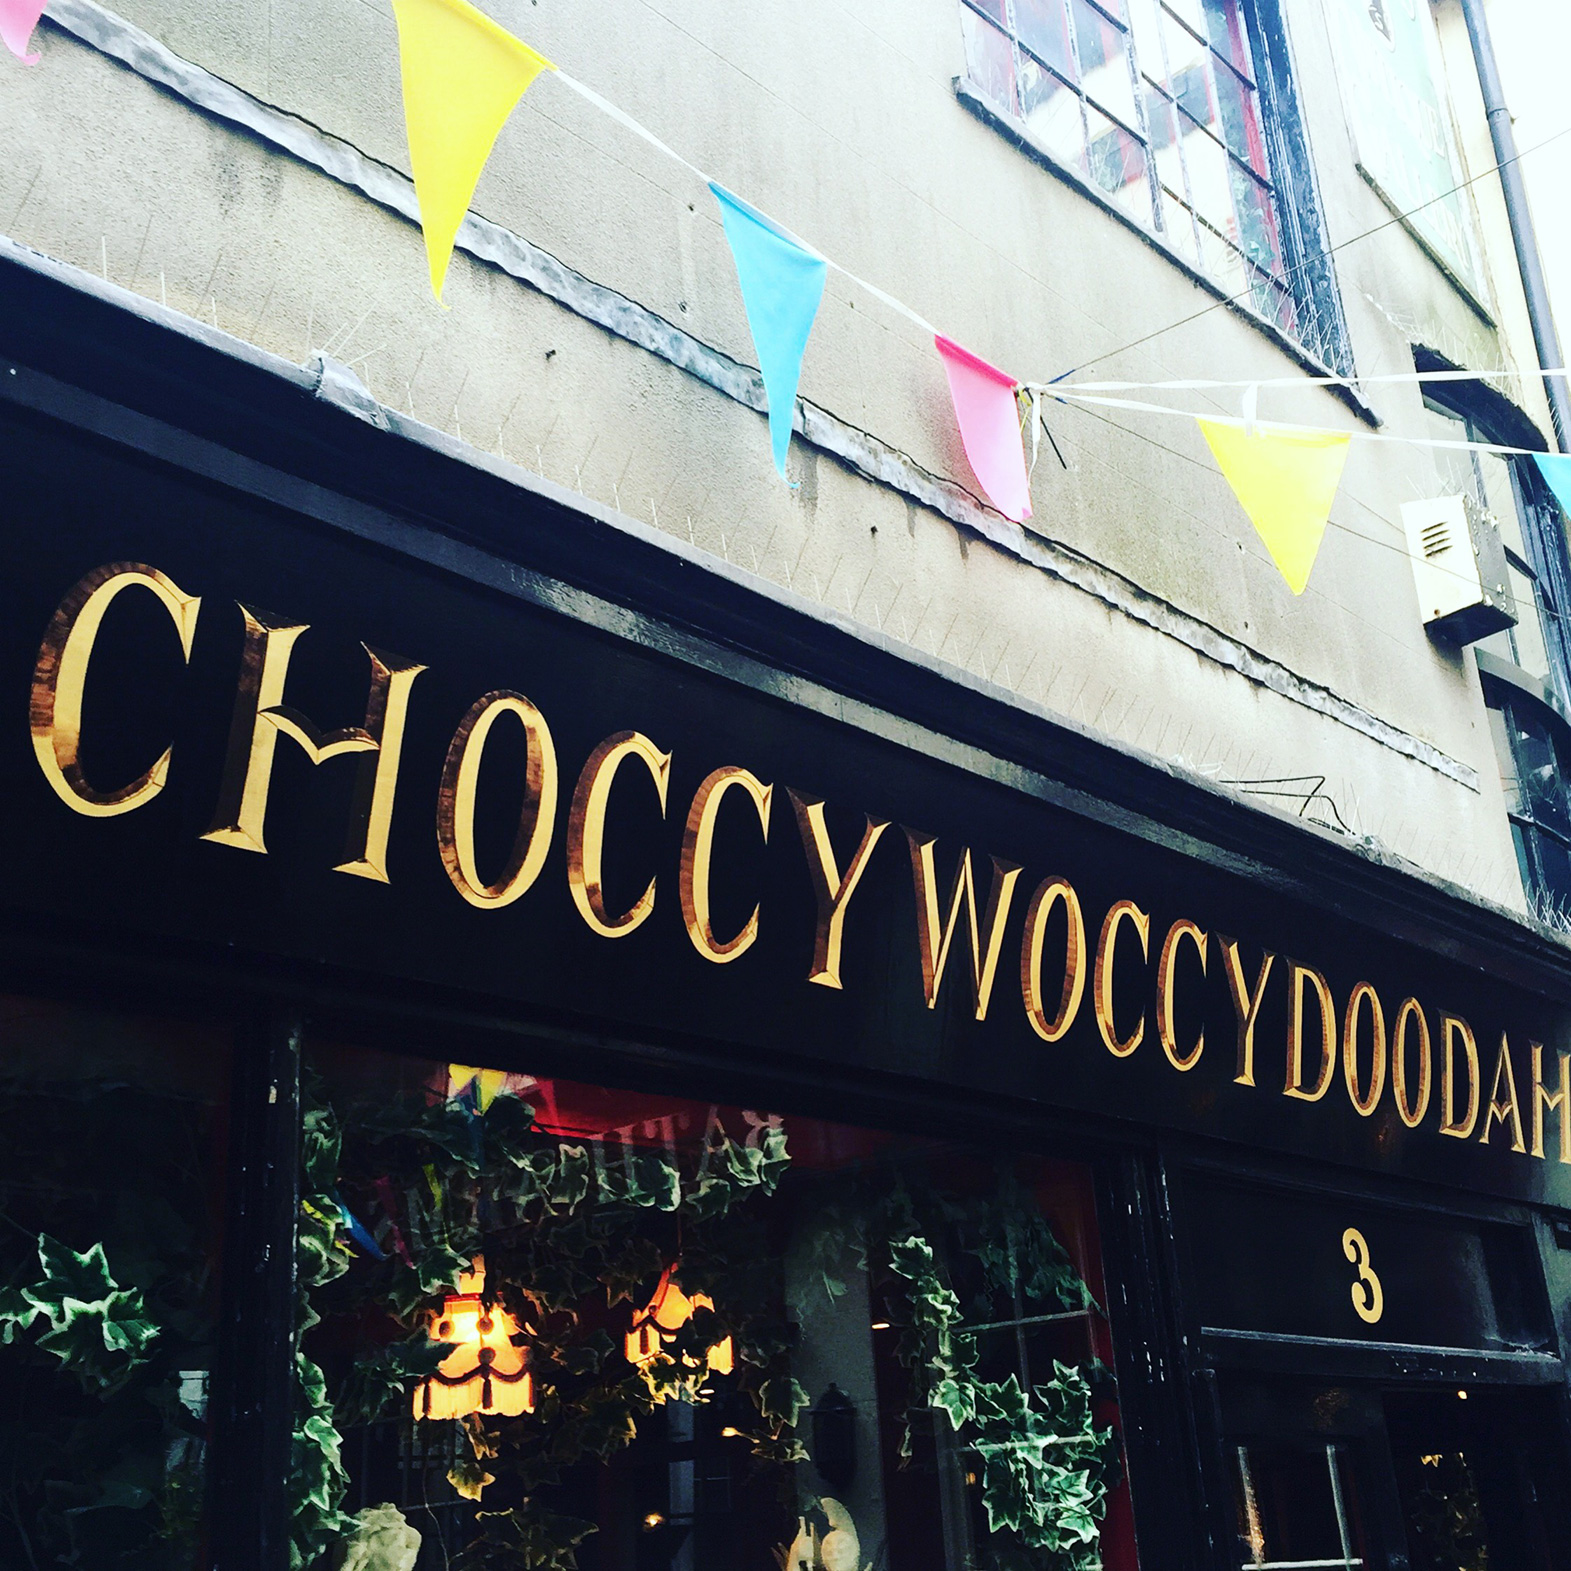 brighton-food-blog-choccywoccydodah-cakes-the-lanes.JPG